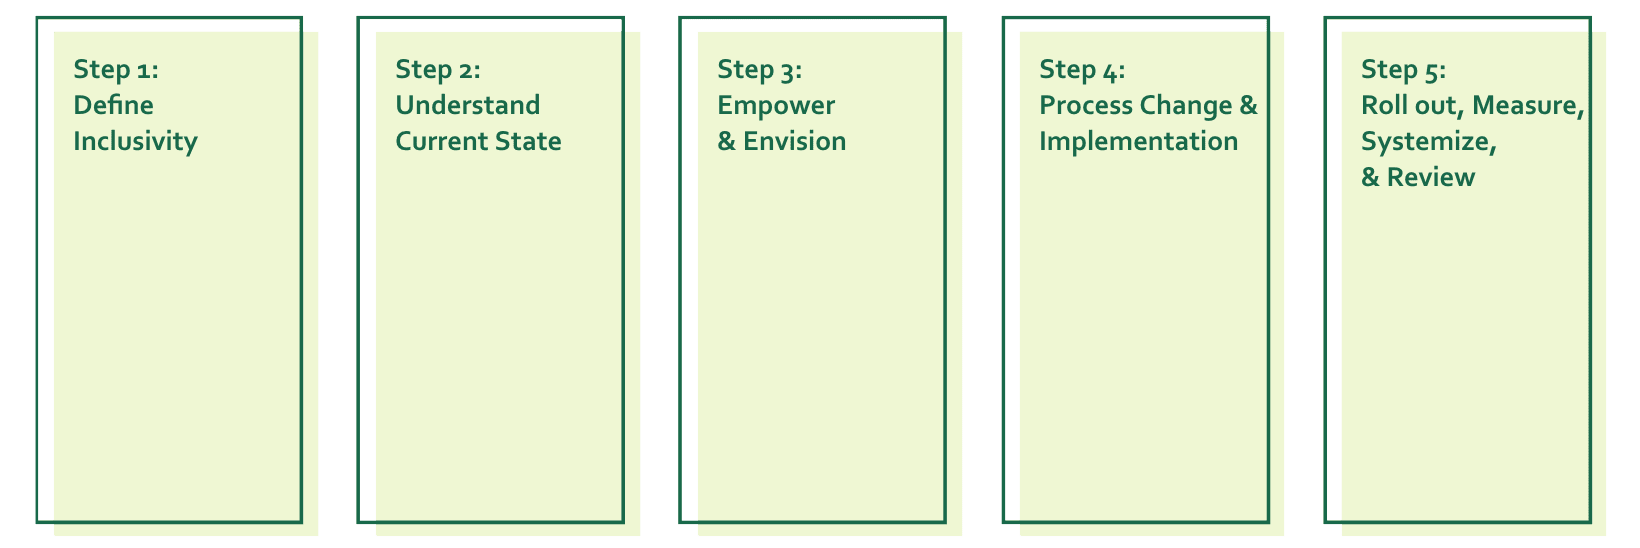 Step 1 - Define Inclusivity. Step 2 - Understand Current State. Step 3 - Empower and Envision. Step 4 - Process Change and Implementation. Step 5 - Roll Out, Measure, Systematize, and Review.